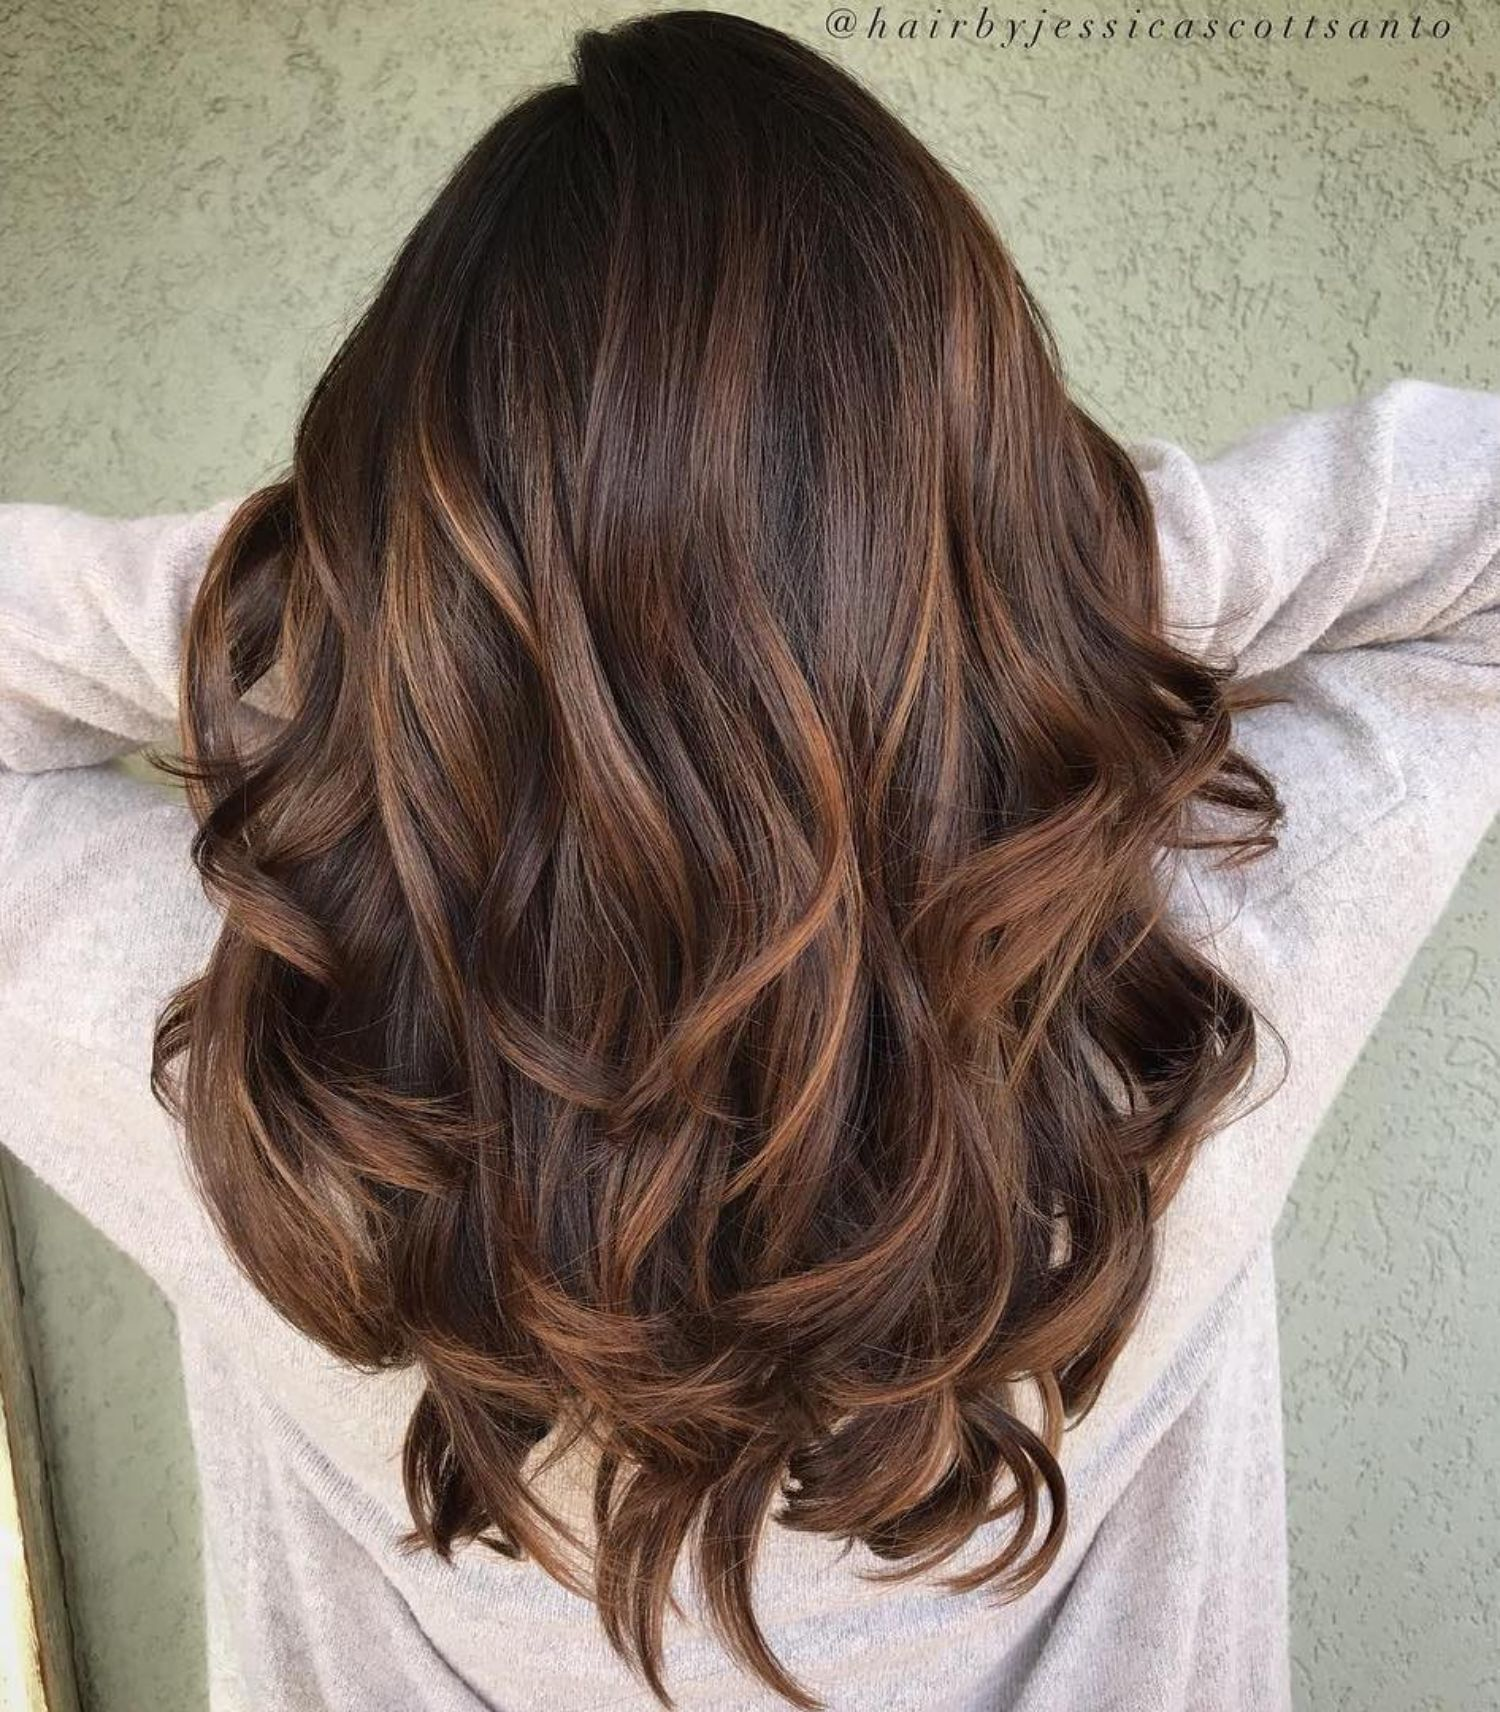 60 chocolate brown hair color ideas for brunettes | fashion